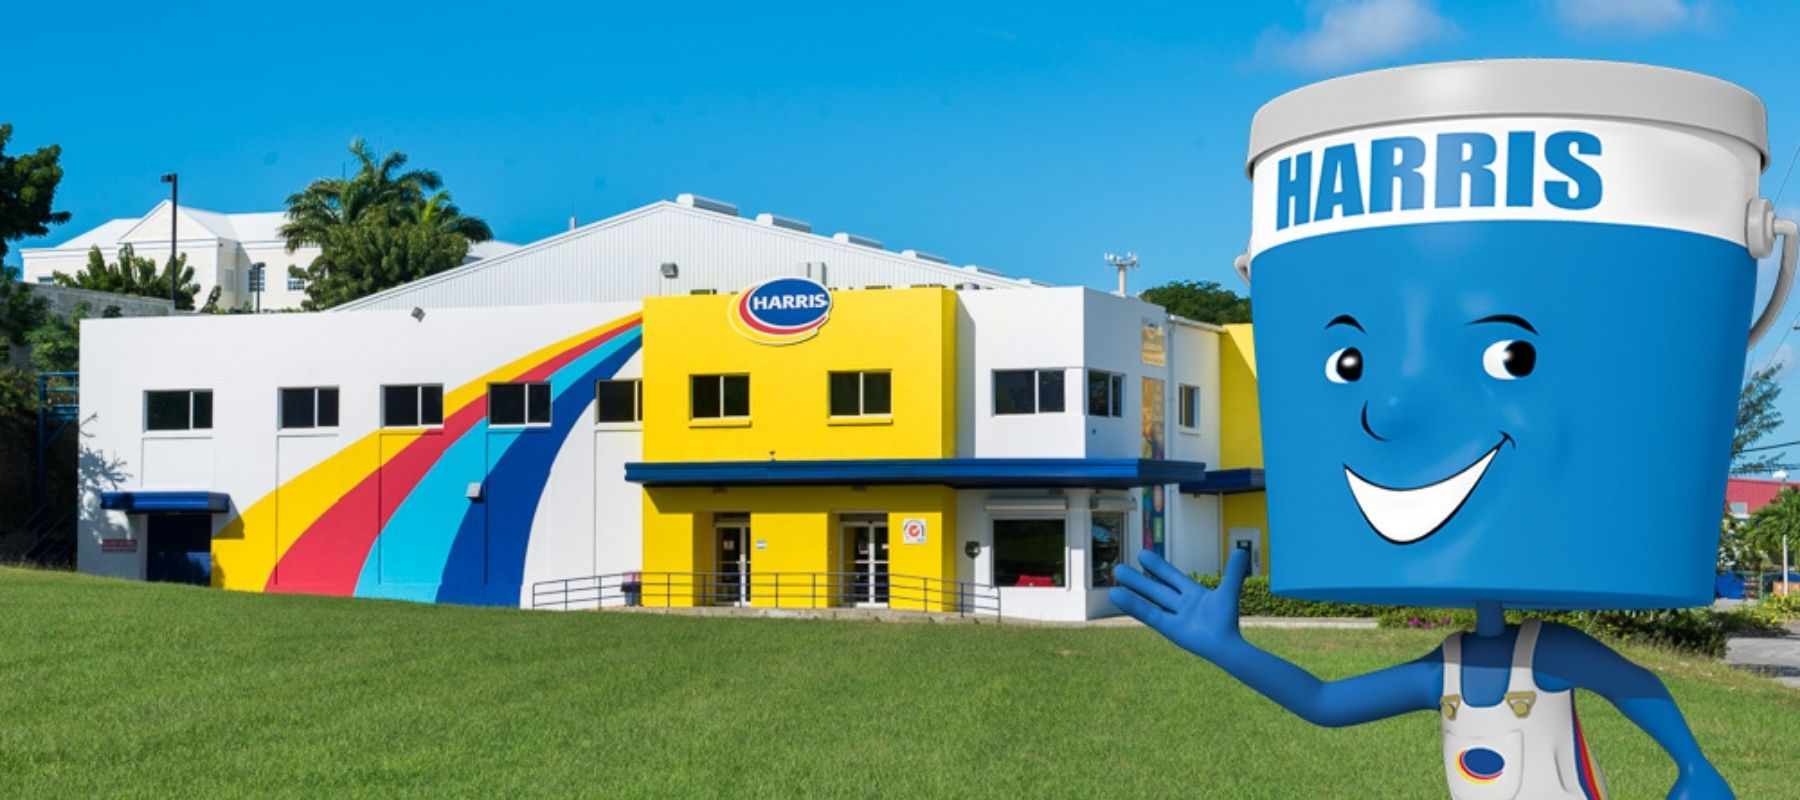 Harris Paints manufactuing facility with little blue man overlayed on top waving